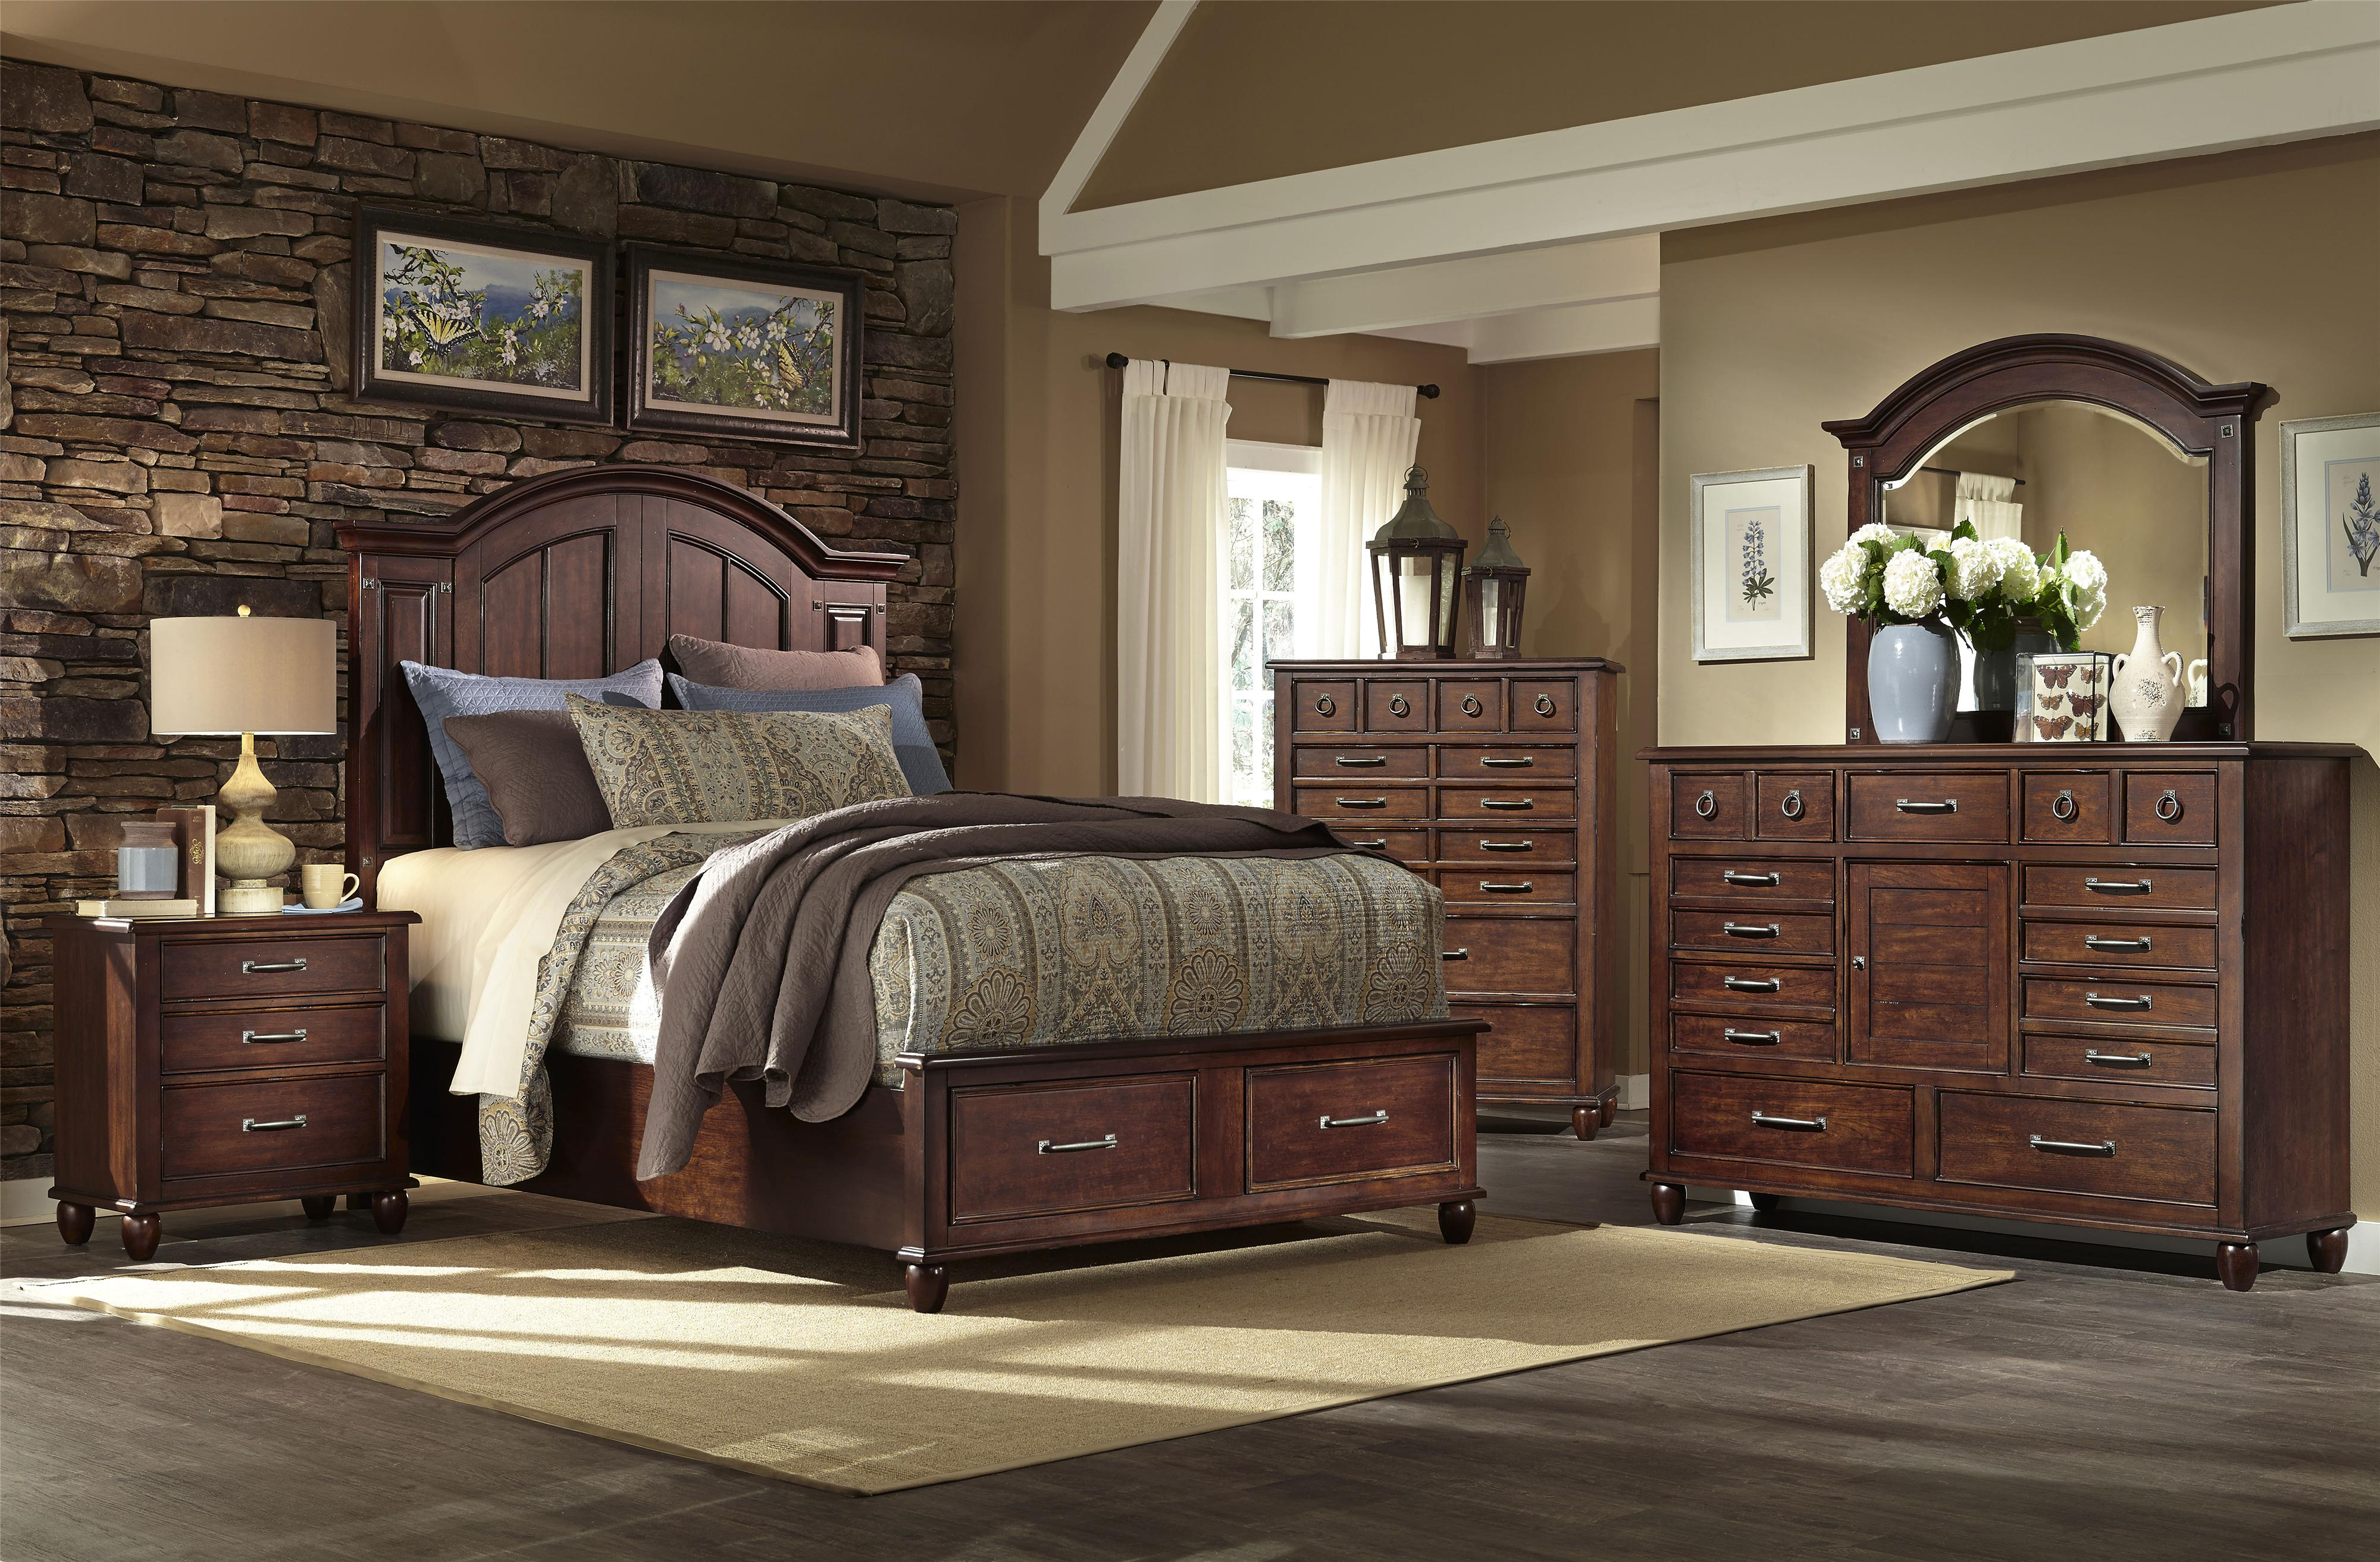 Easton Collection Blue Ridge King Bedroom Group - Item Number: 426 K Bedroom Group 1